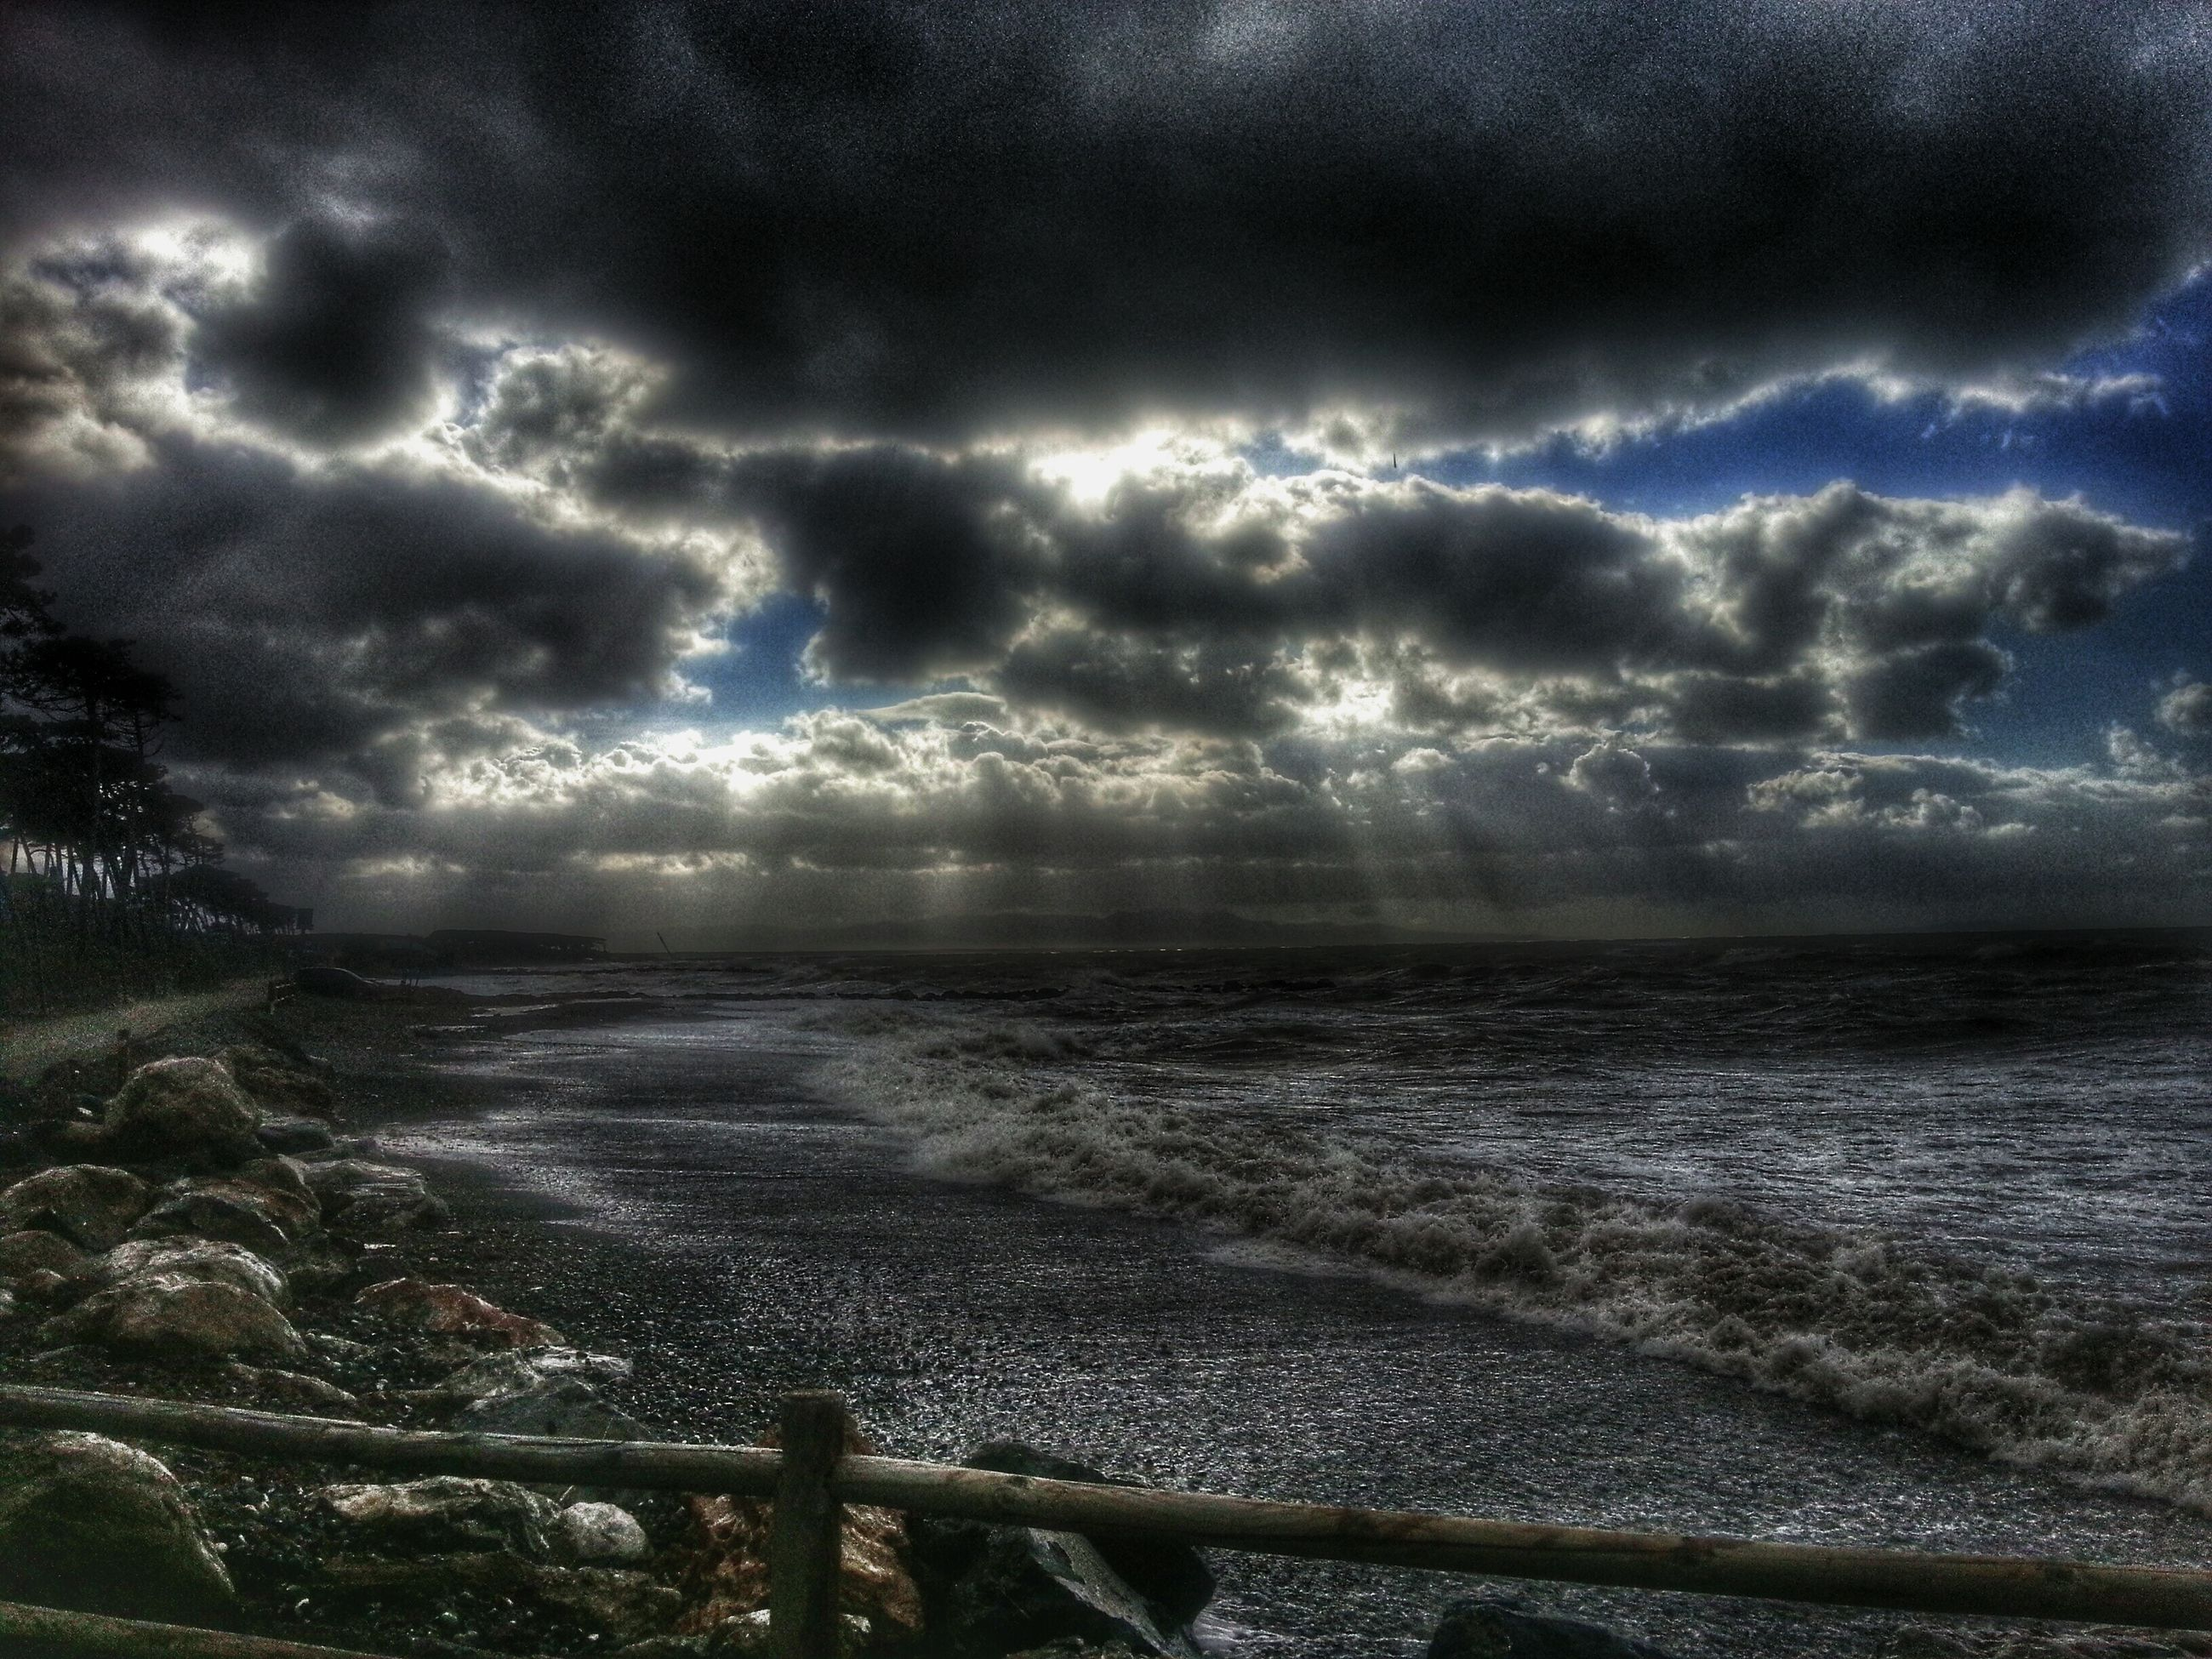 sky, water, cloud - sky, sea, cloudy, scenics, tranquil scene, horizon over water, tranquility, beauty in nature, weather, nature, overcast, storm cloud, cloud, idyllic, beach, shore, dramatic sky, outdoors